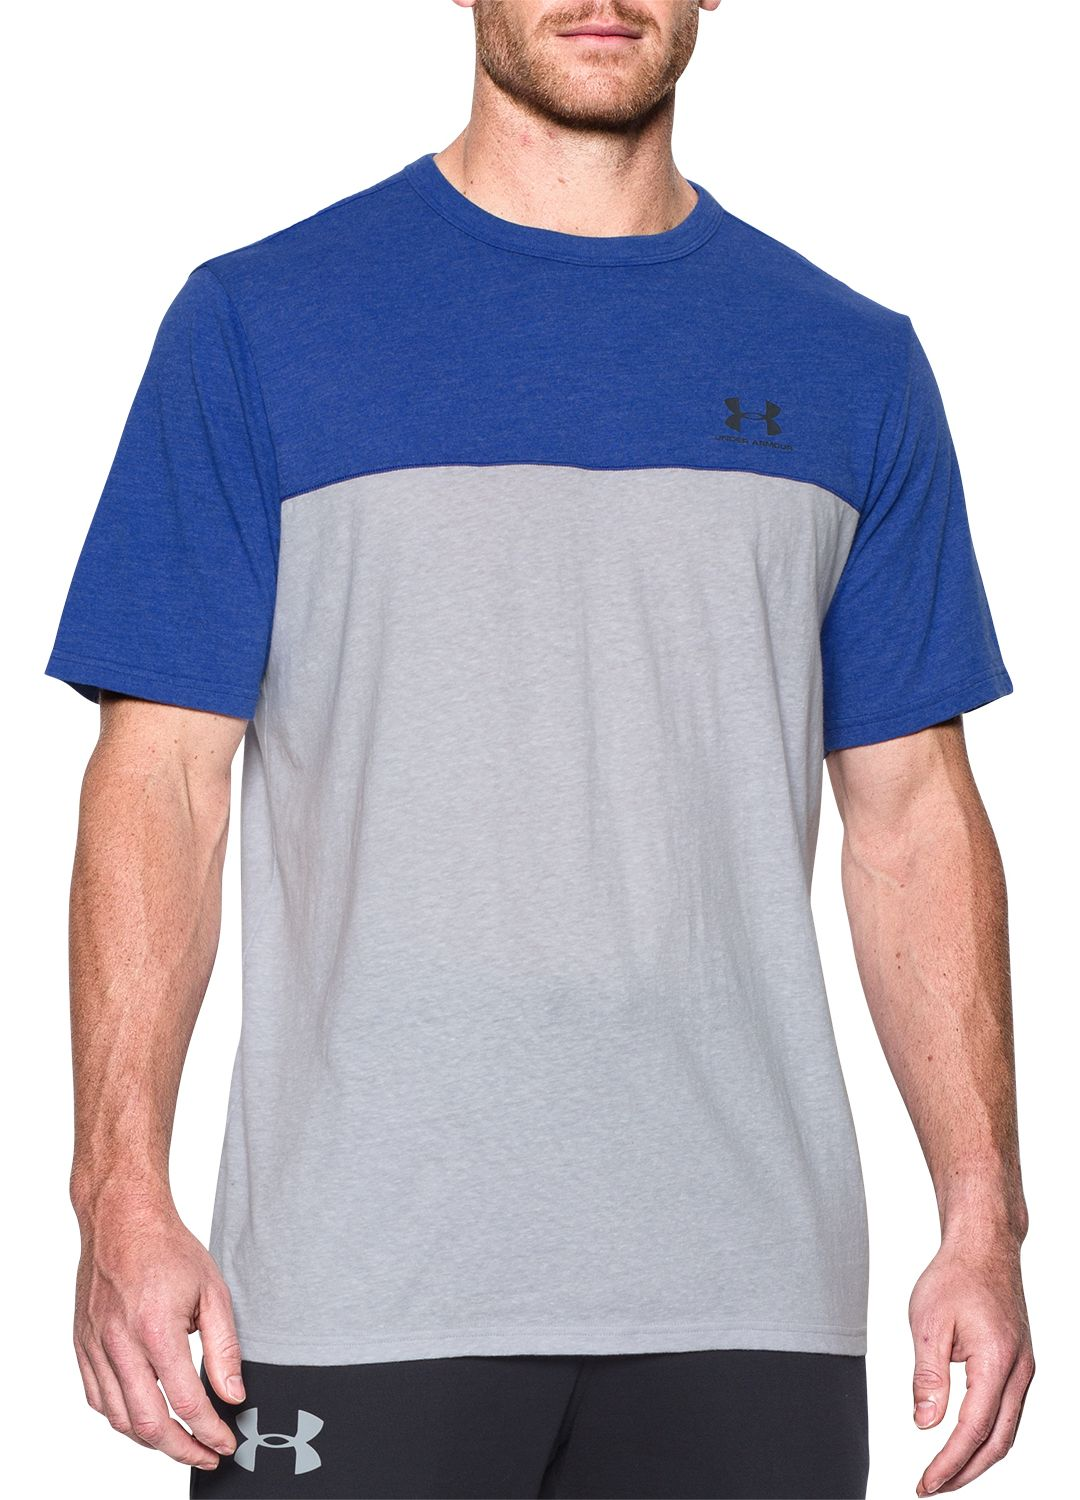 0be45bef Under Armour Men's Tri-Blend Sportstyle T-Shirt | DICK'S Sporting Goods